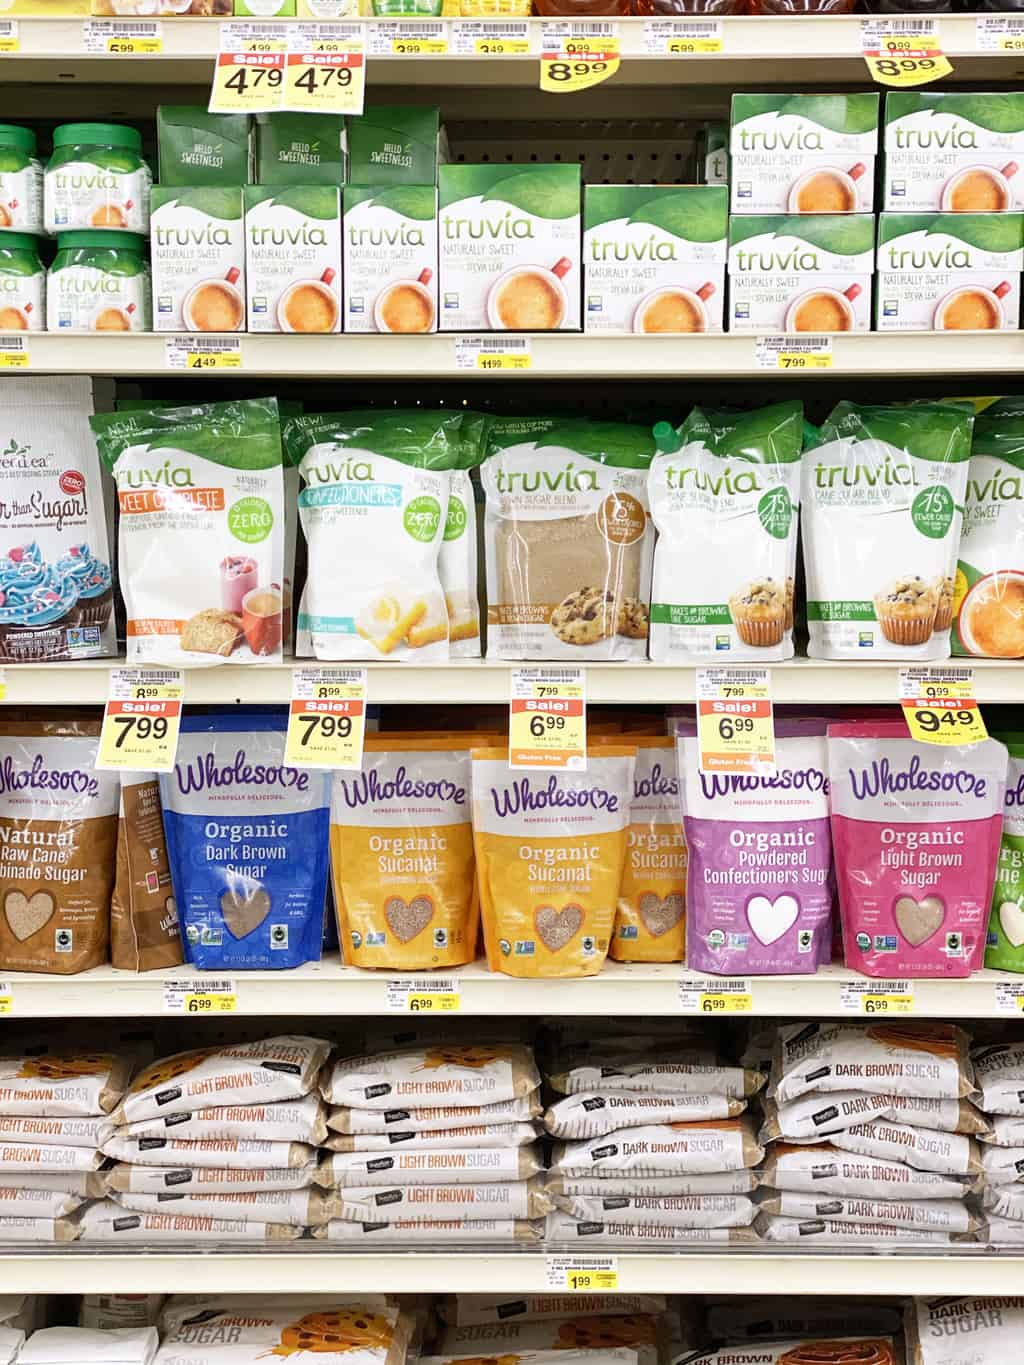 Albertsons shelves stocked with Truvia and other baking products